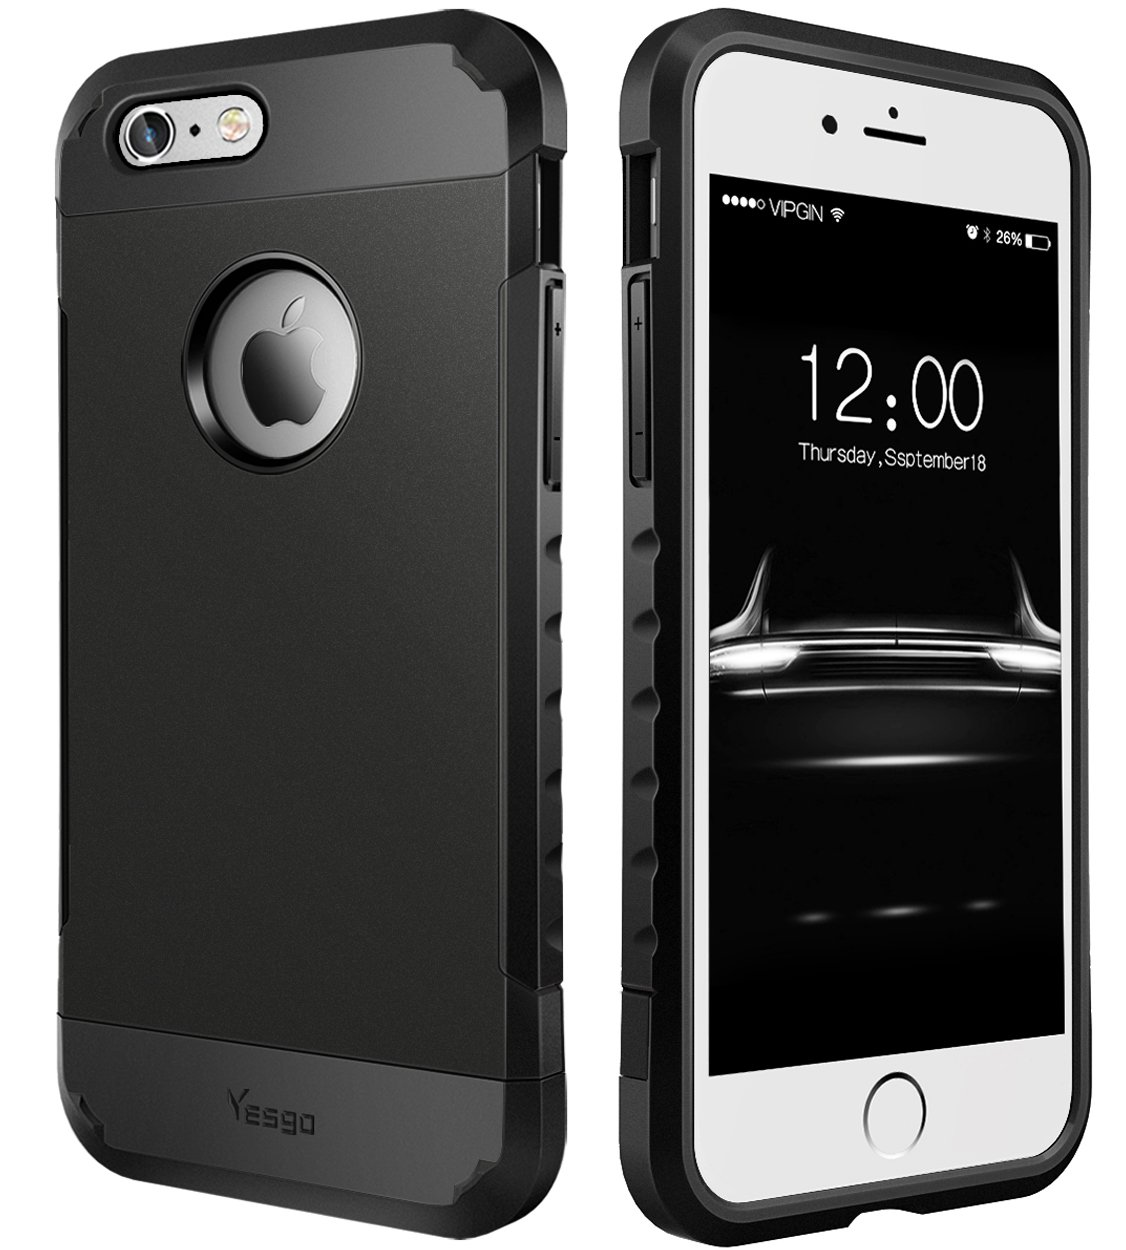 newest collection 56de9 9b822 Yesgo iphone 6s plus case black iPhone 6S Plus Case, iPhone 6 Plus Case,  Dual Layer Heavy Duty Rugged Protective Case for iPhone 6S Plus & iPhone 6  ...